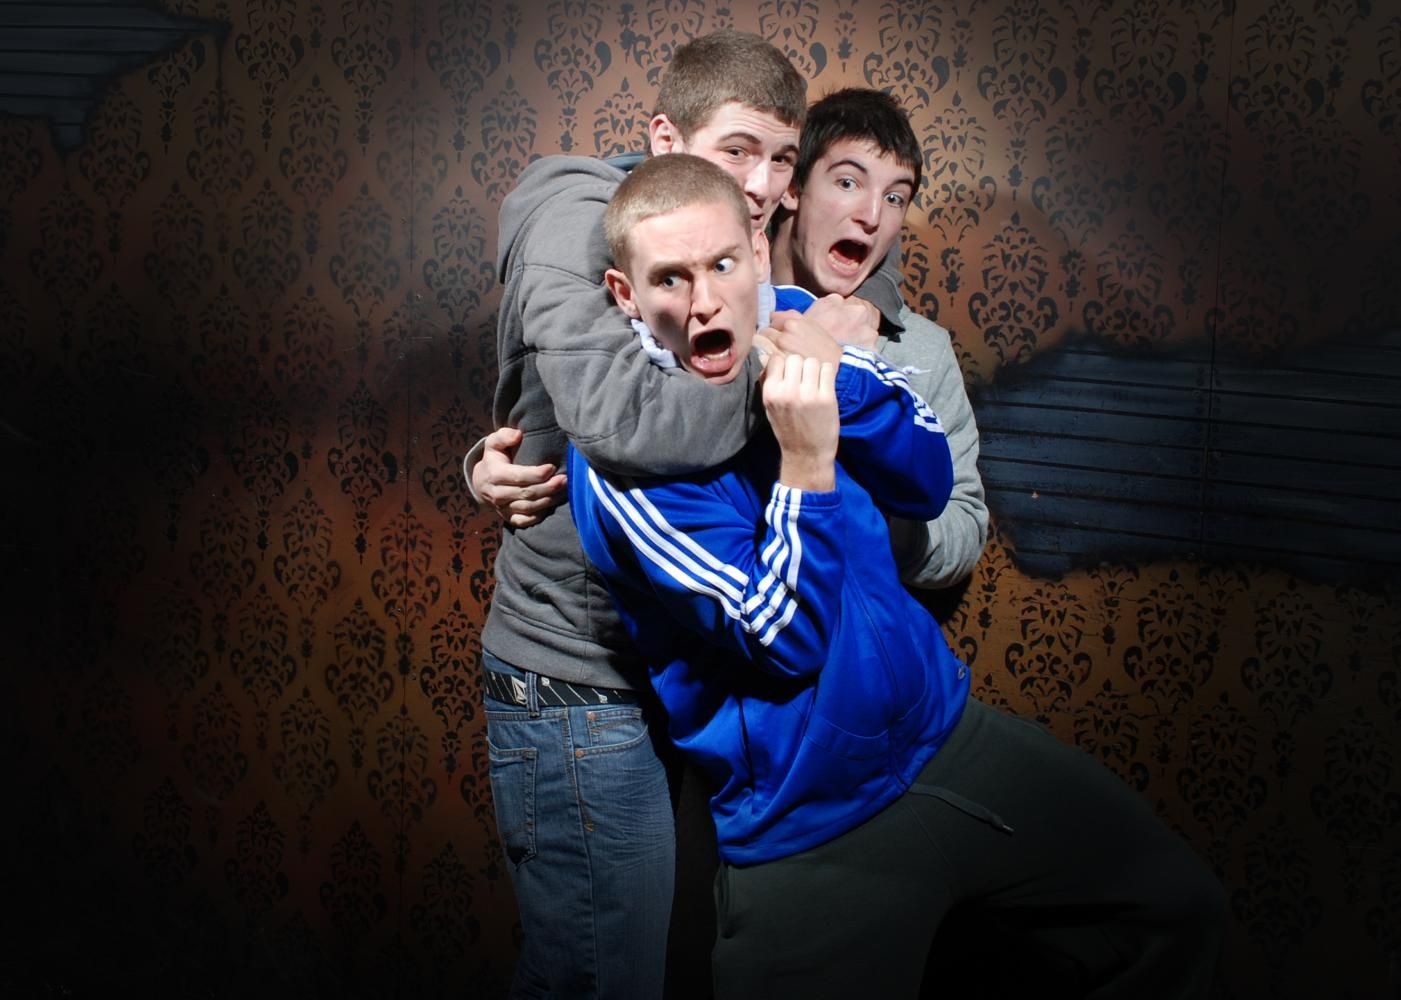 Nightmares Fear Factory Niagara Falls' Scariest And